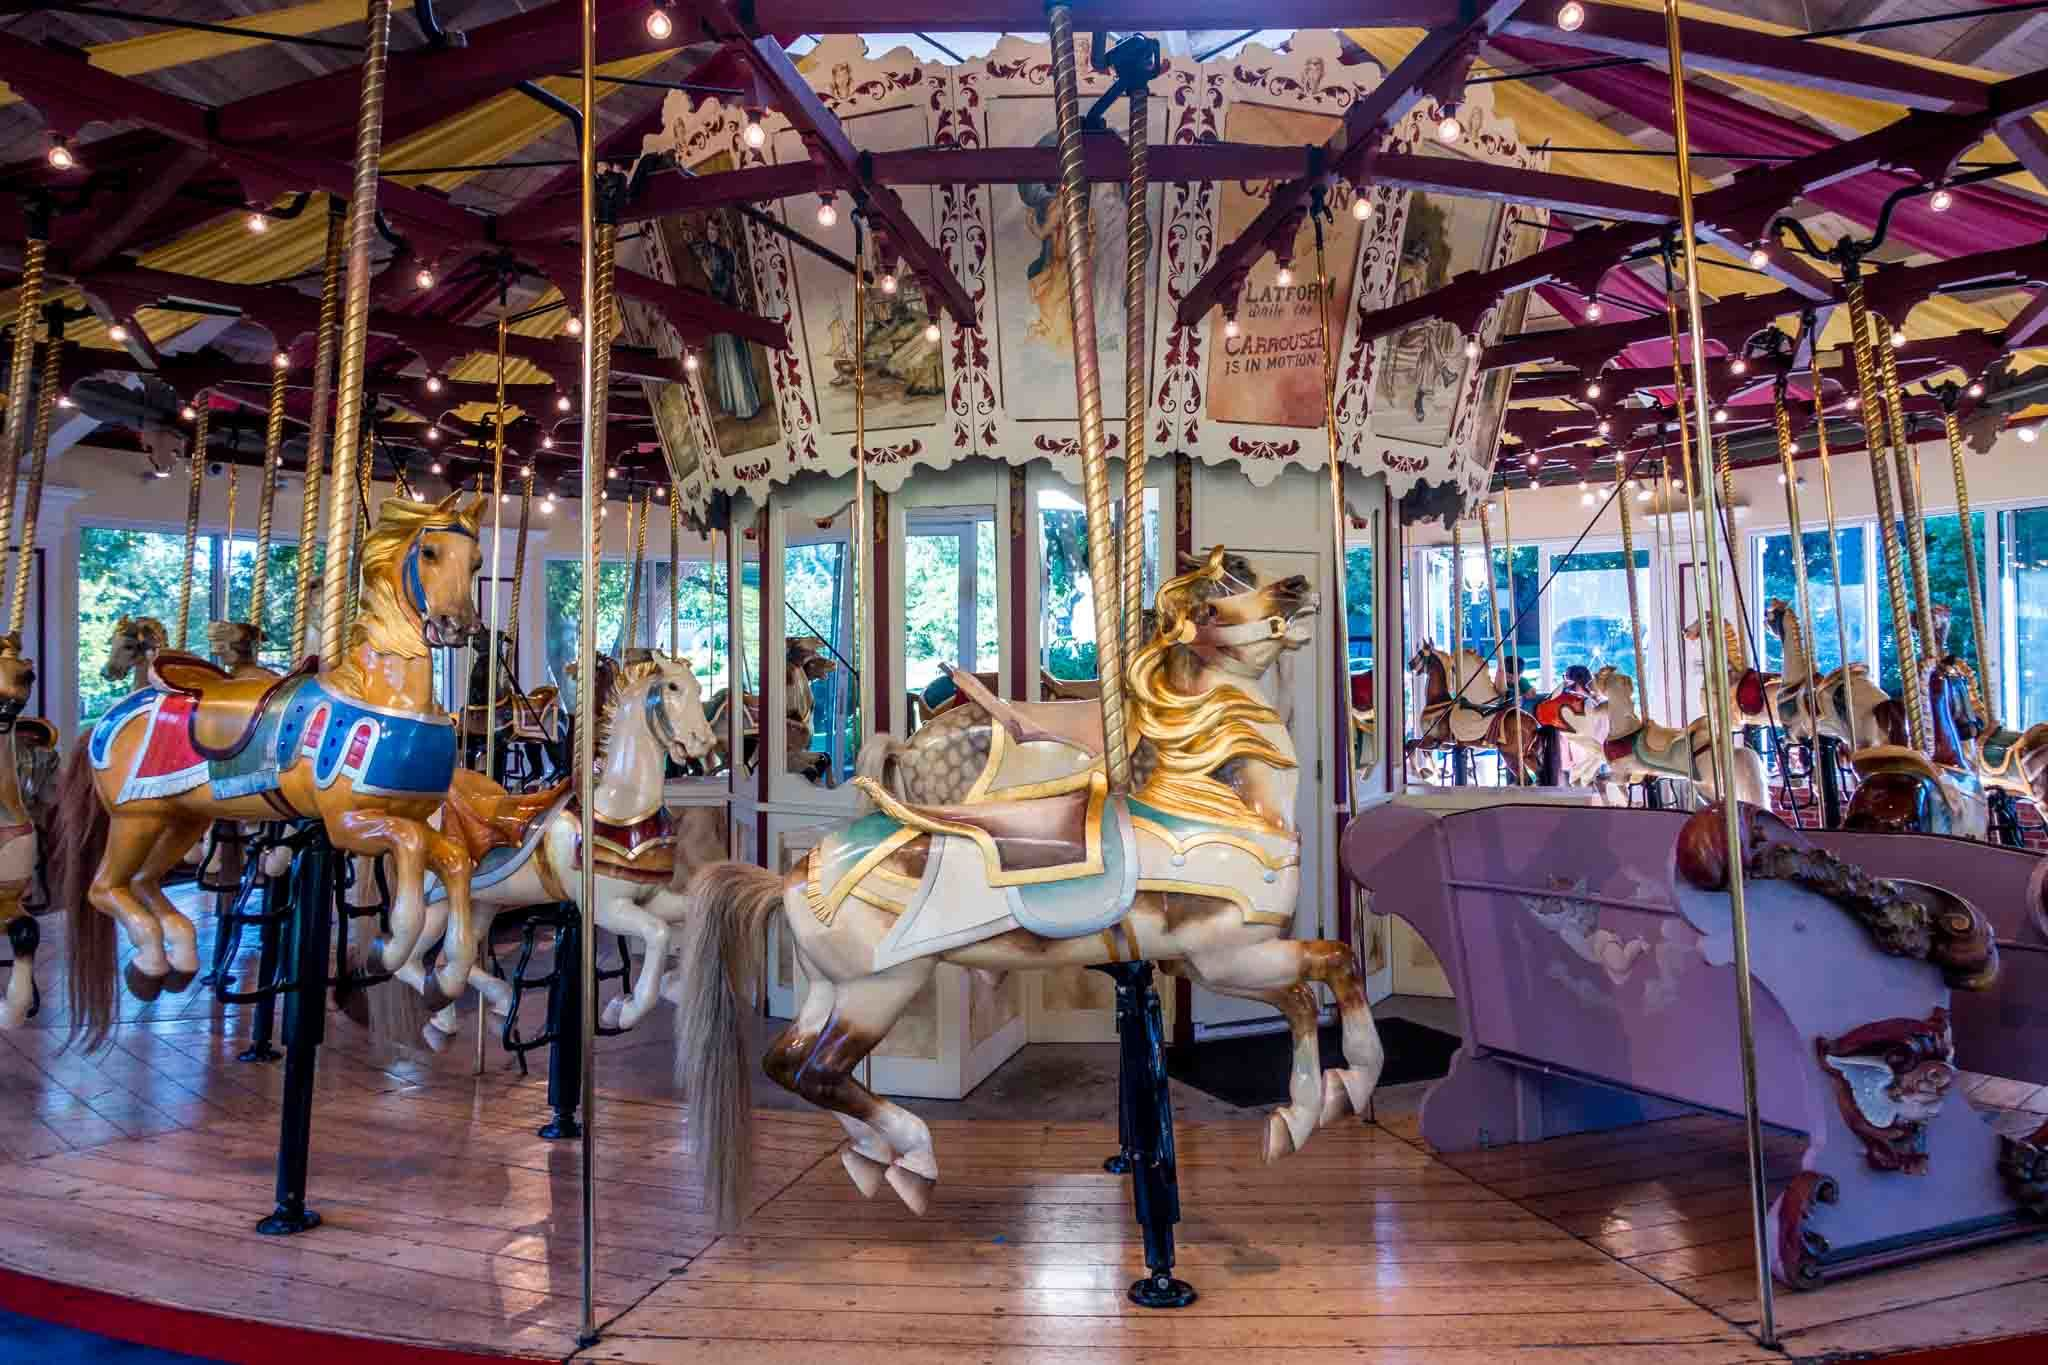 Colorful carousel ride